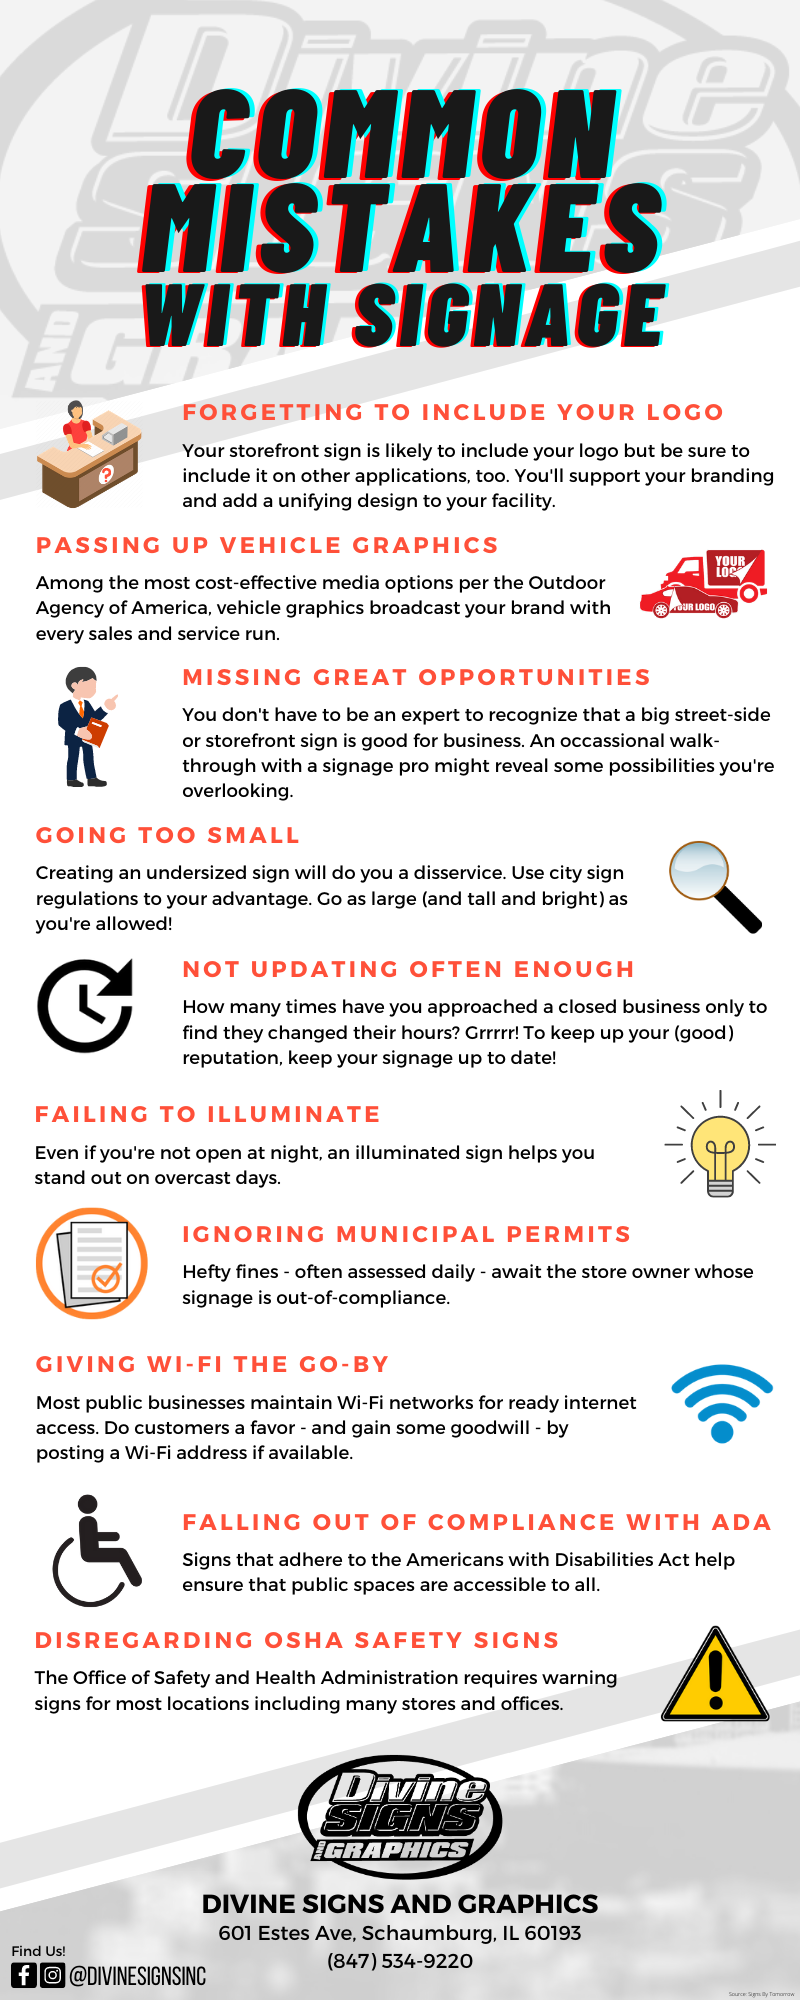 Common Mistakes With Signage - INFOGRAPHIC